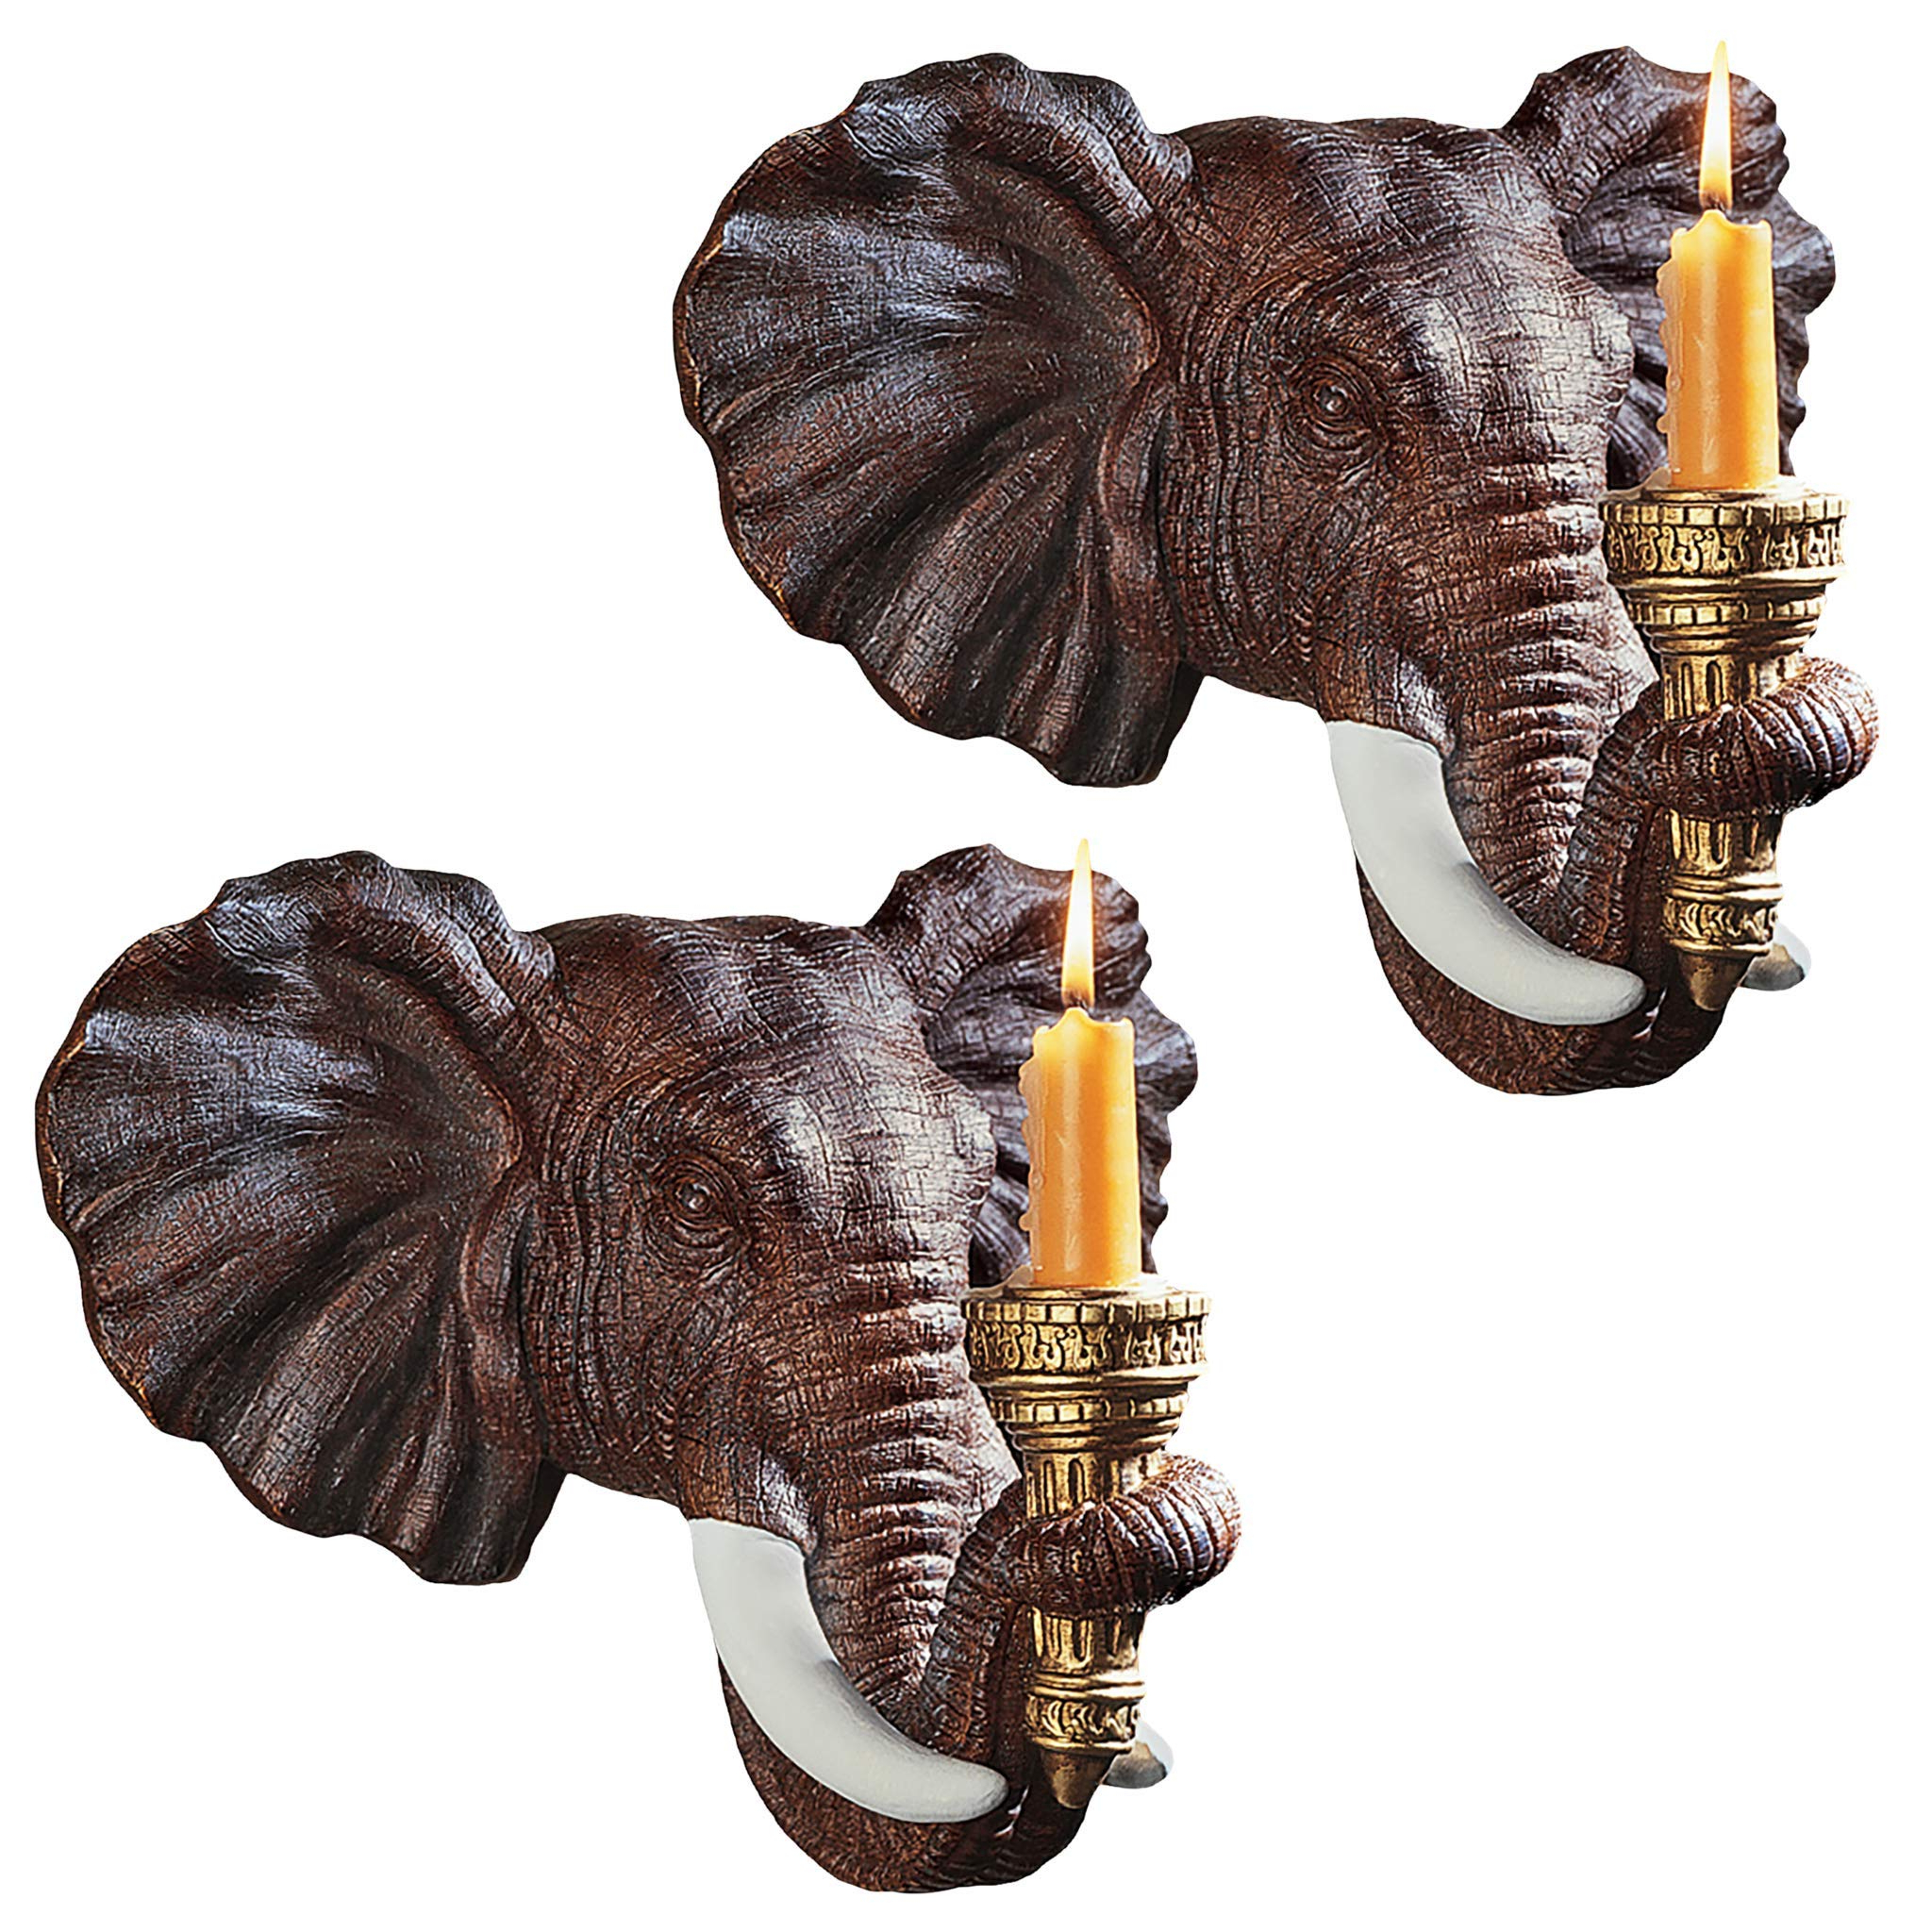 Preferred Design Toscano Ng930614 Elephant African Decor Candle Holder Wall Sconce Sculpture, 12 Inch, Set Of Two, Polyresin, Full Color,set Of 2 Inside Gold Elephants Sculpture Wall Décor (View 12 of 20)